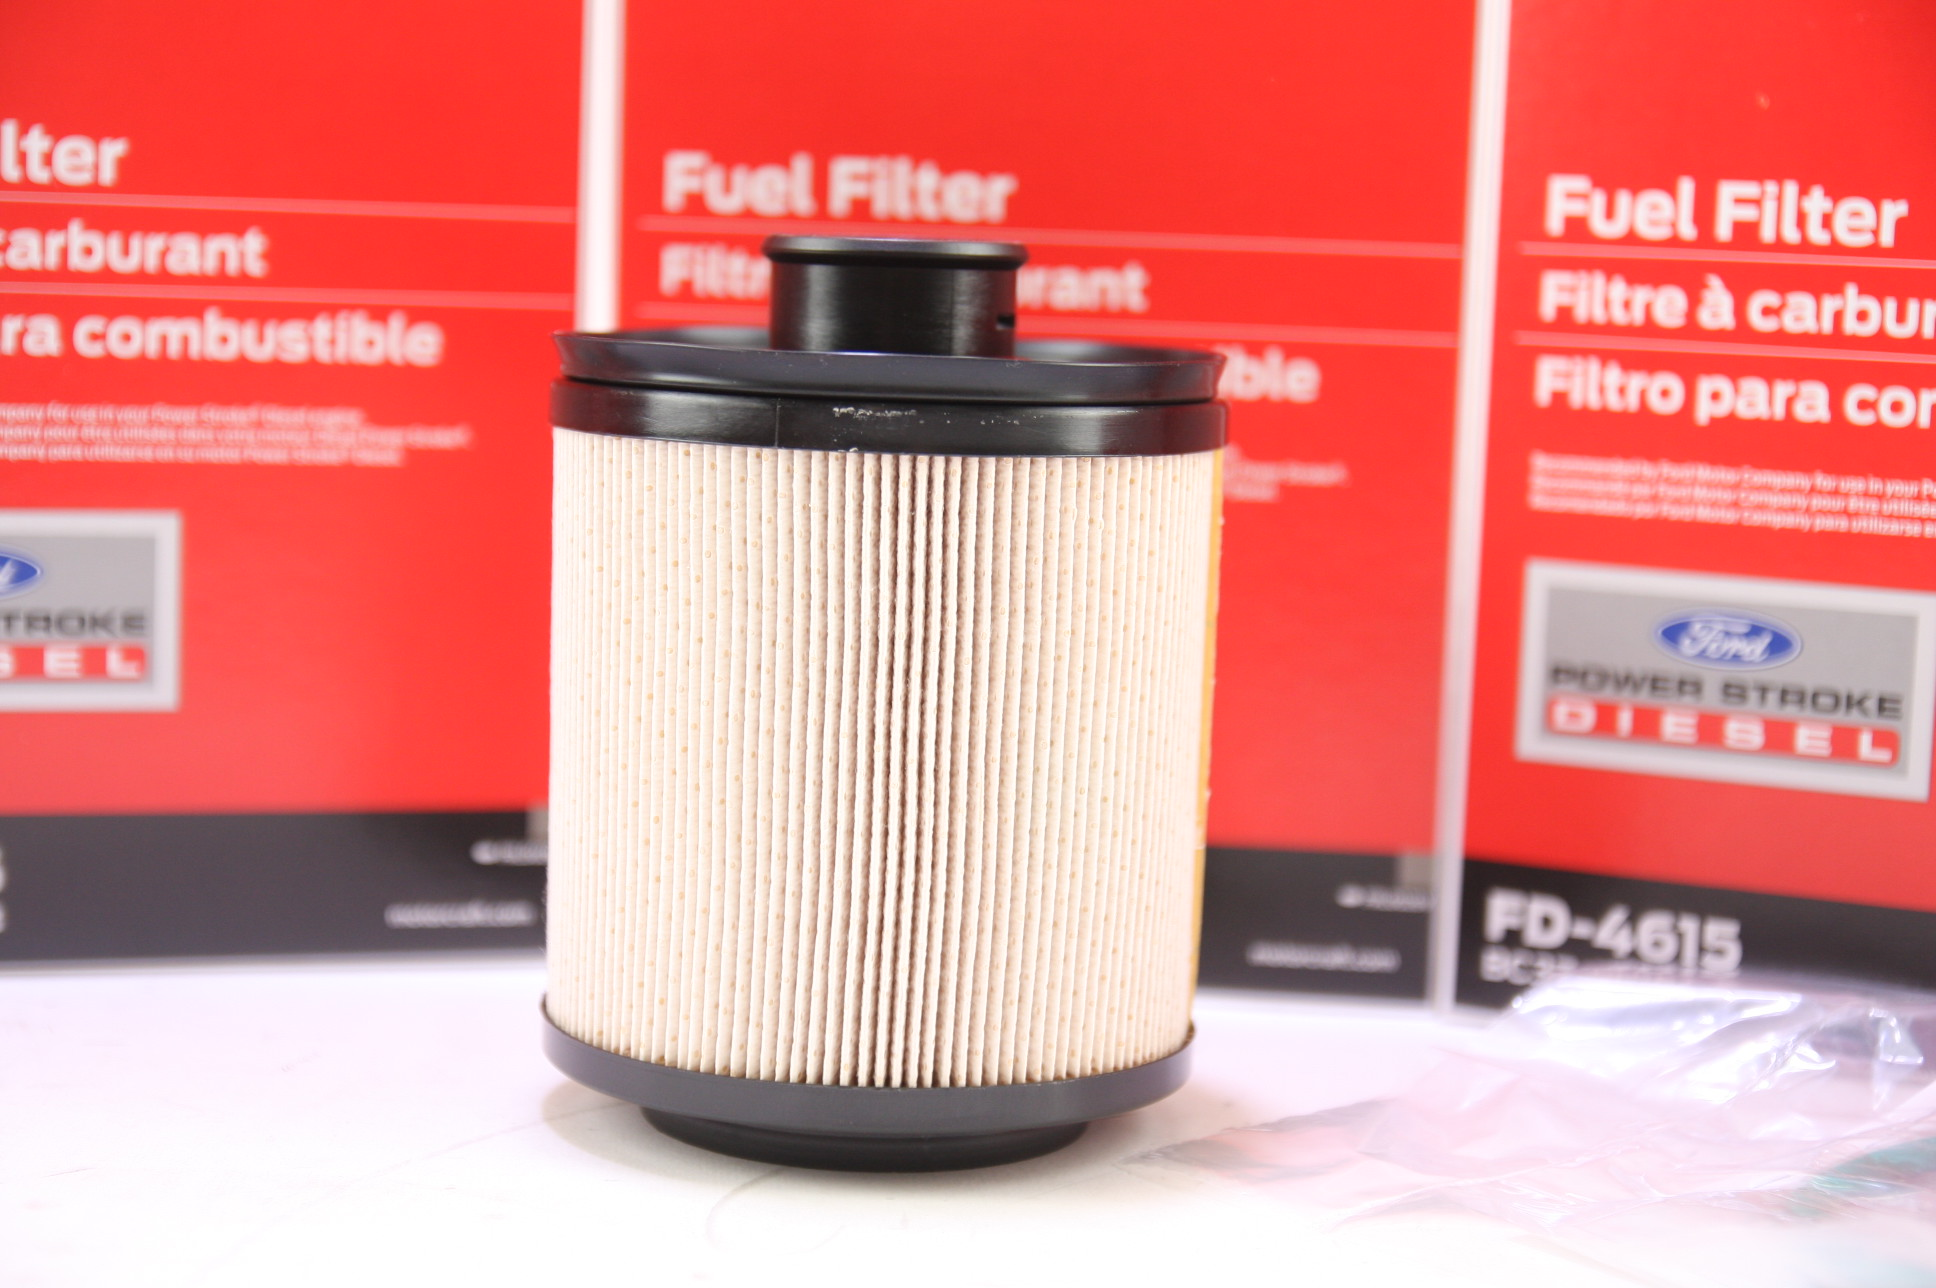 Set of 5 Ford Motorcraft FD4615 Fuel Filter 11-13 6.7L DIESEL BC3Z9N184B NIP - image 9